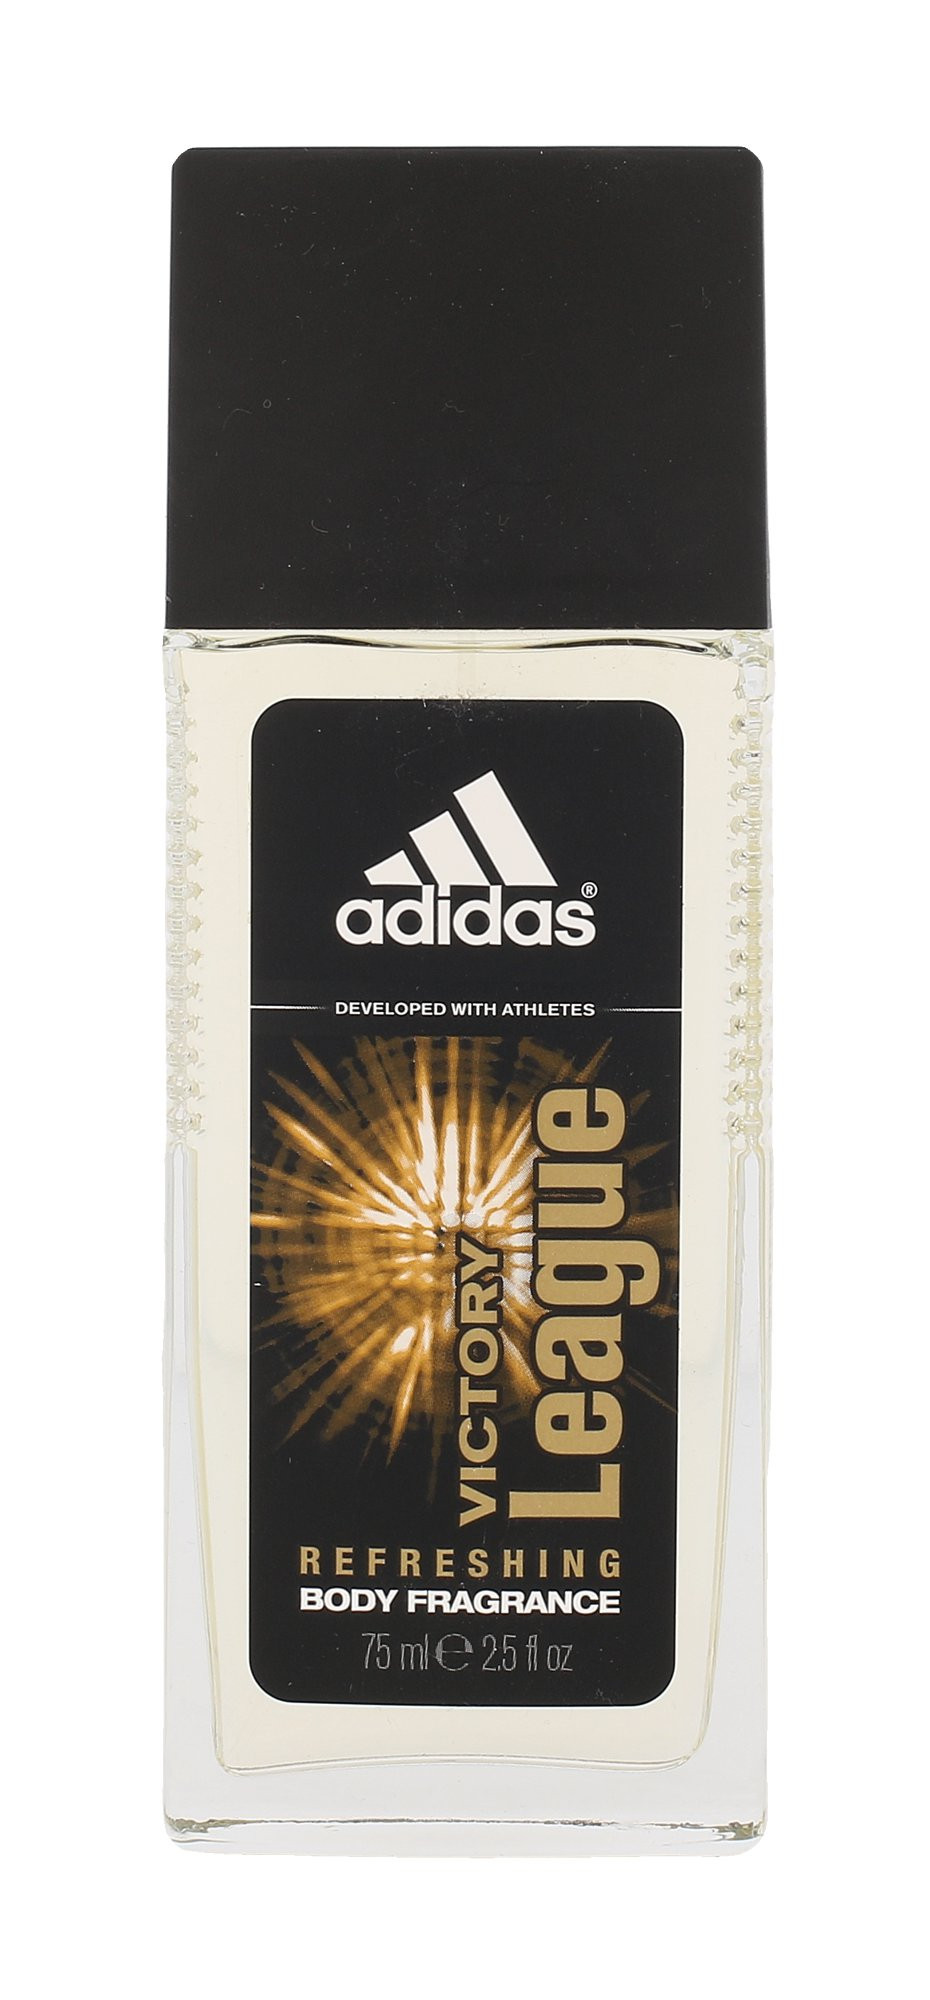 Adidas dns men victory league 75ml